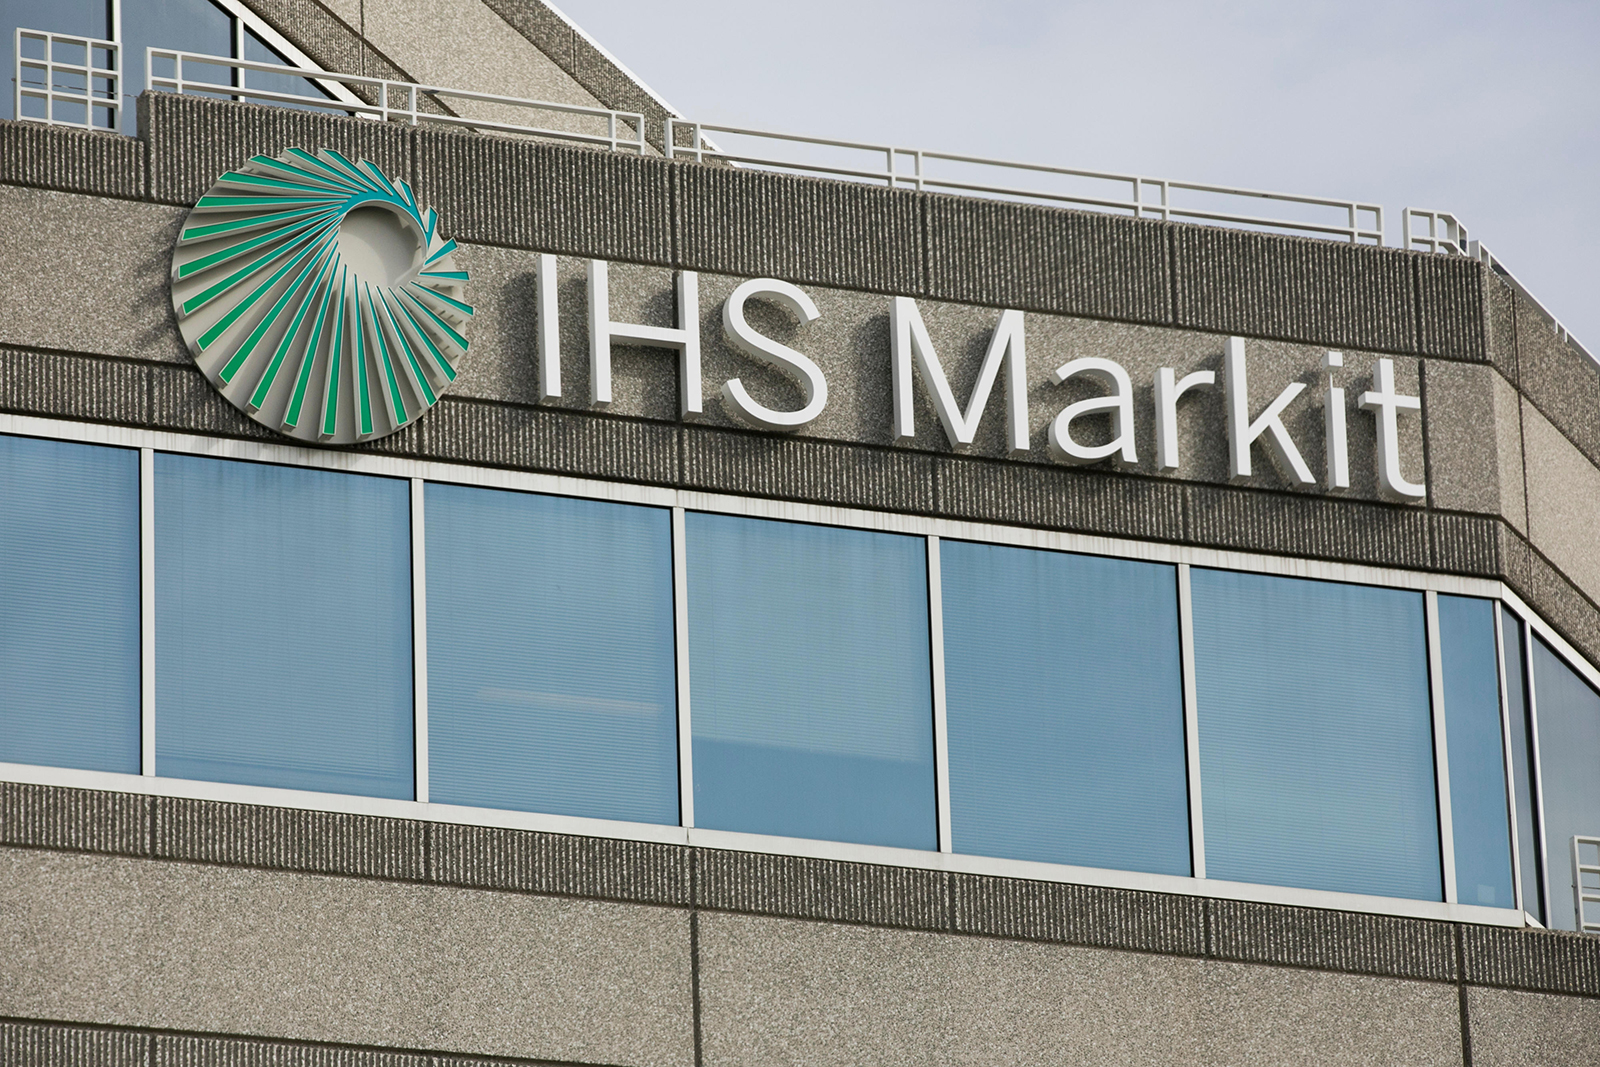 S&P Global announces $44 billion purchase of IHS Markit